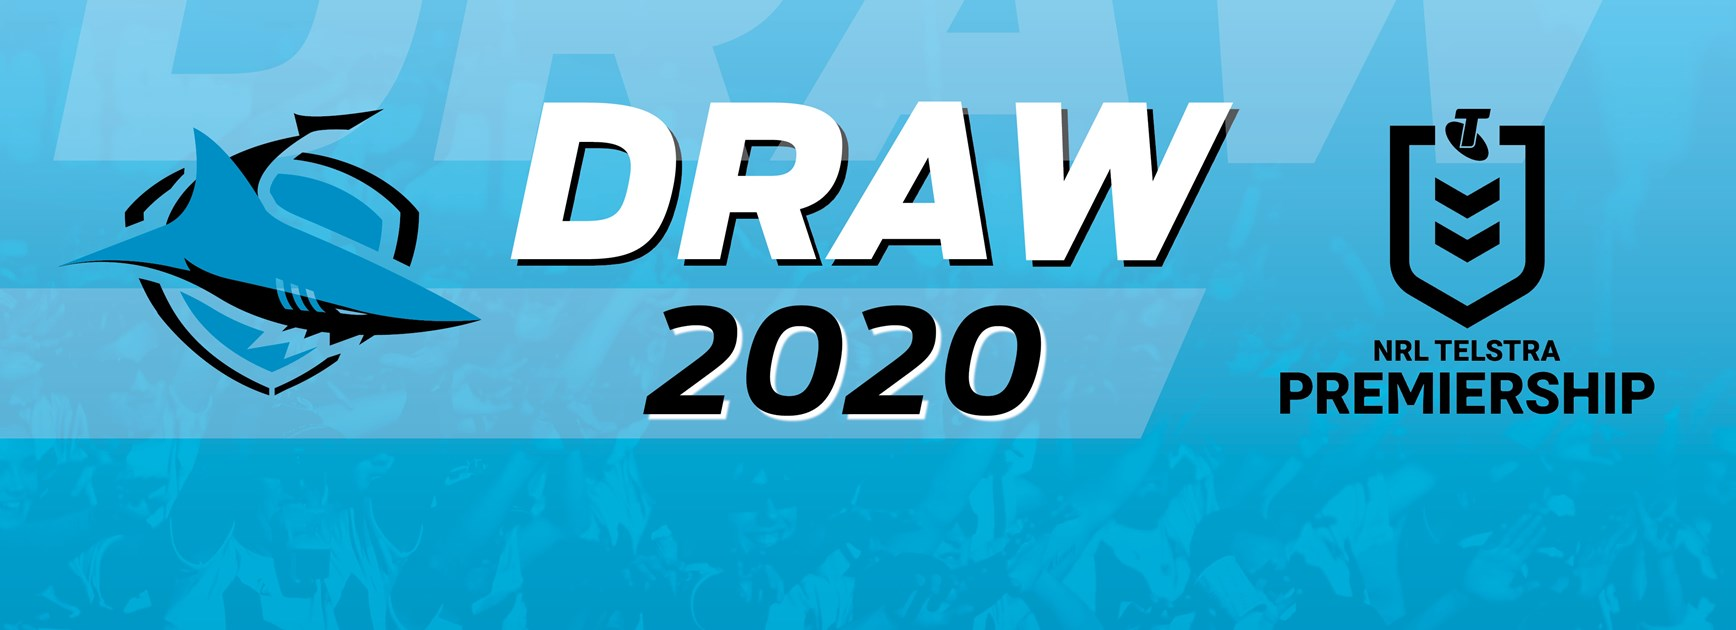 Sharks season draw - 2020